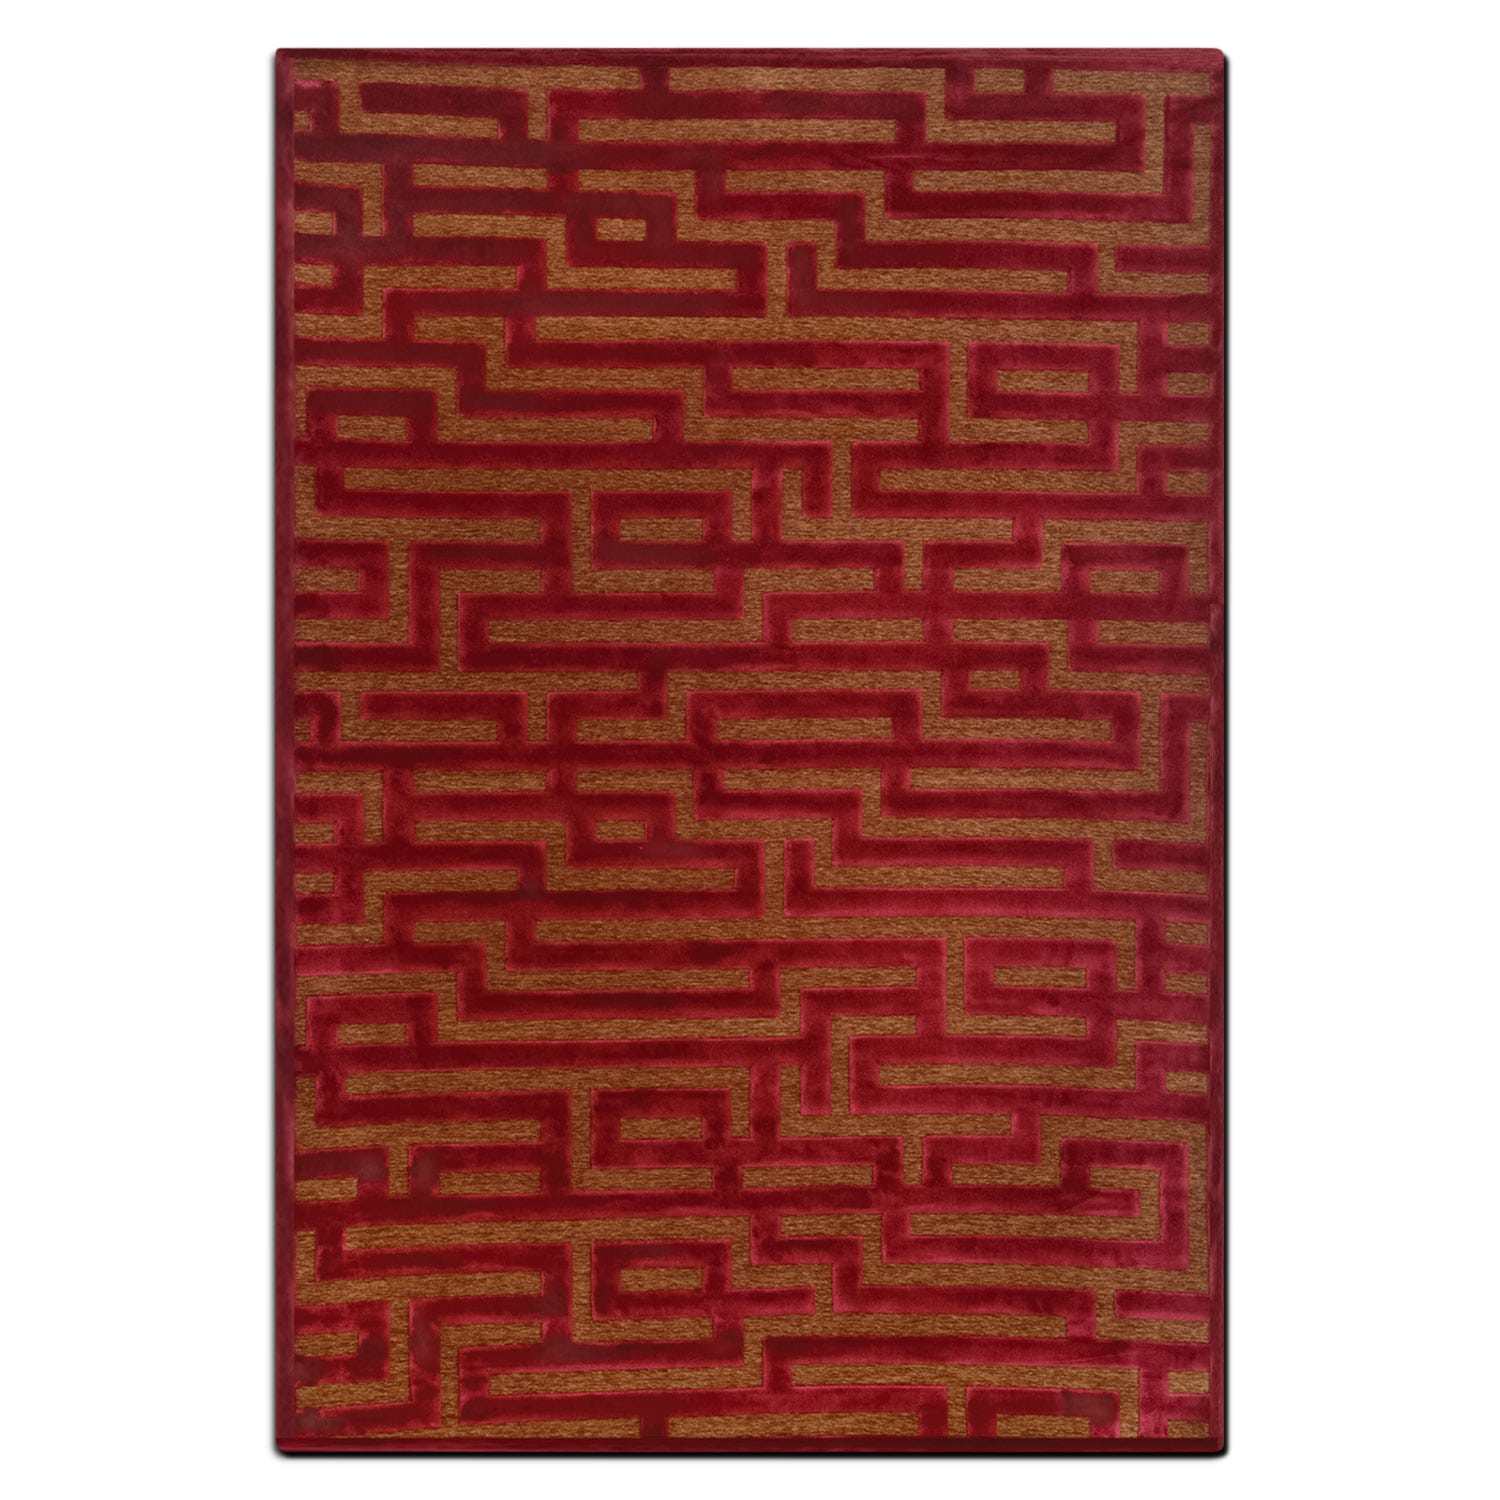 Rugs - Napa 8' x 10' Area Rug - Red and Brown